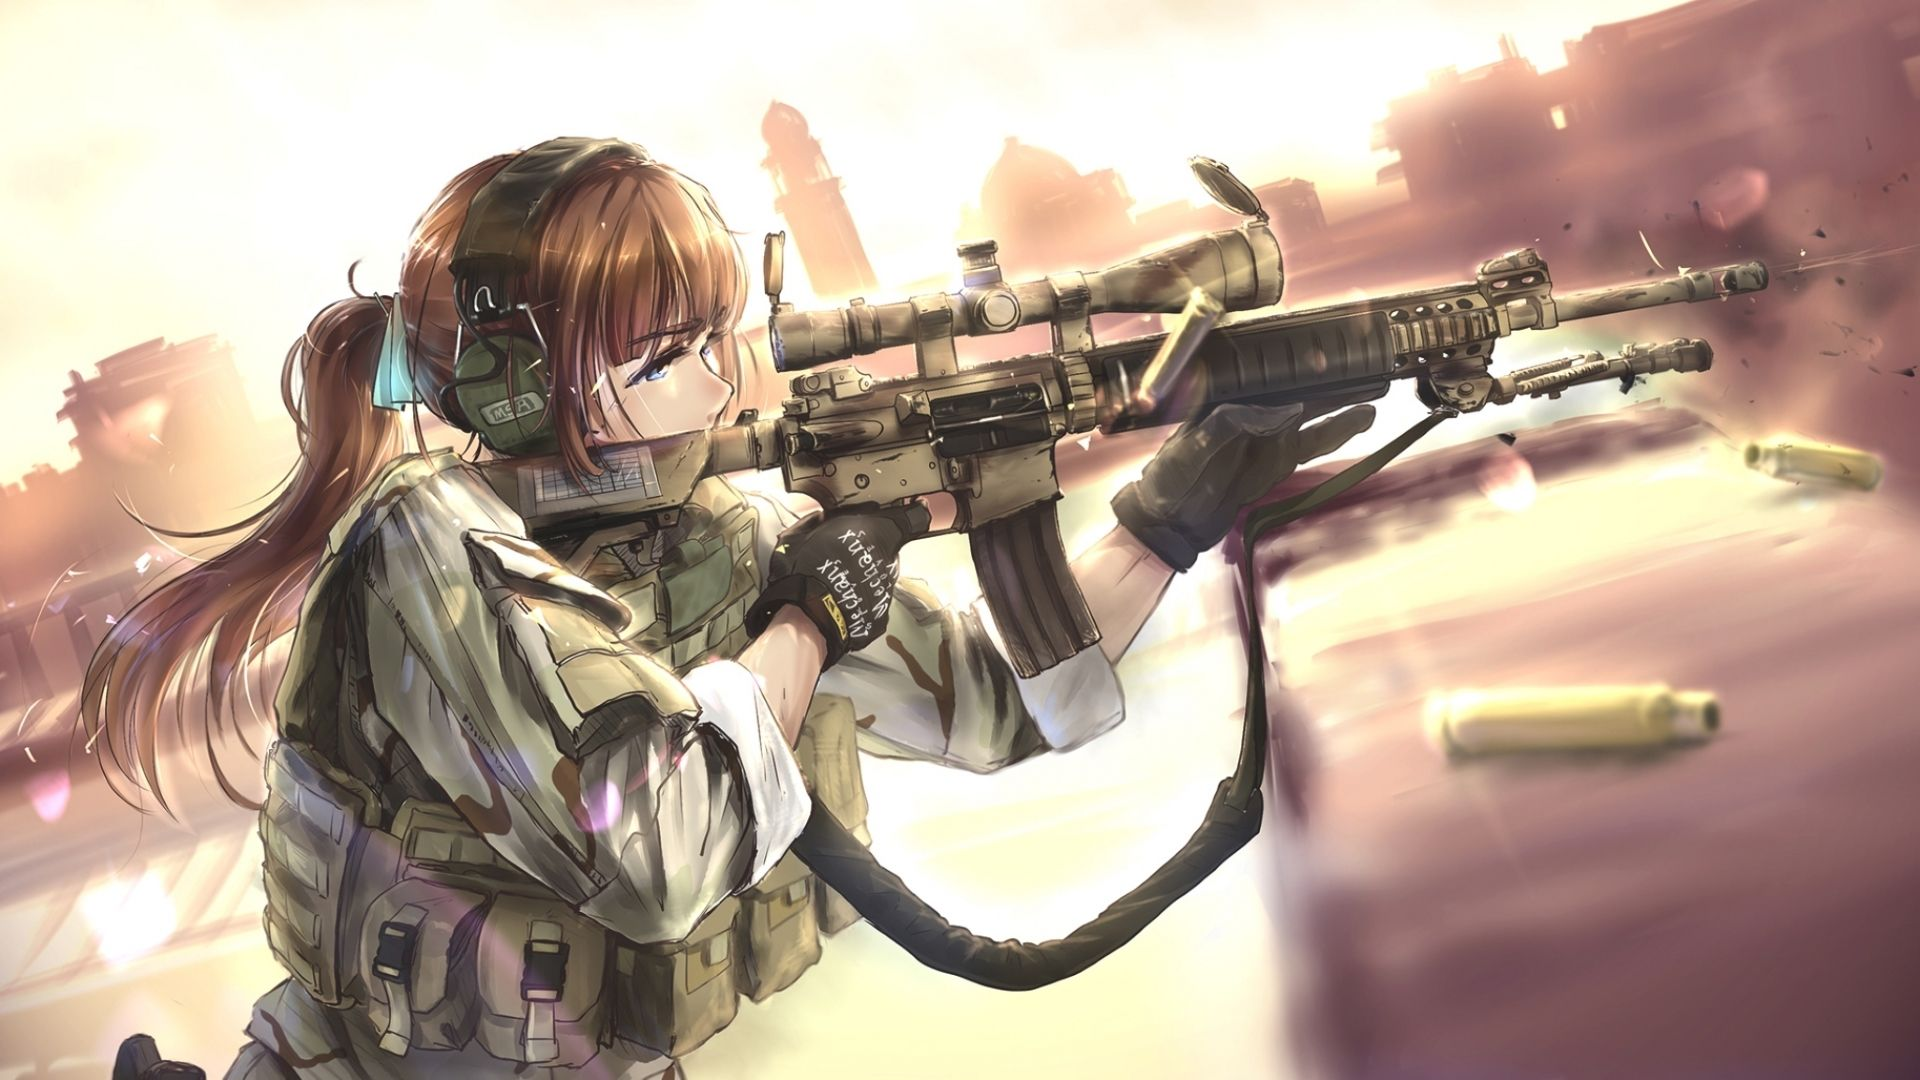 1920x1080 New Anime Girl with Gun Wallpaper Collection - Anime Wallpaper HD